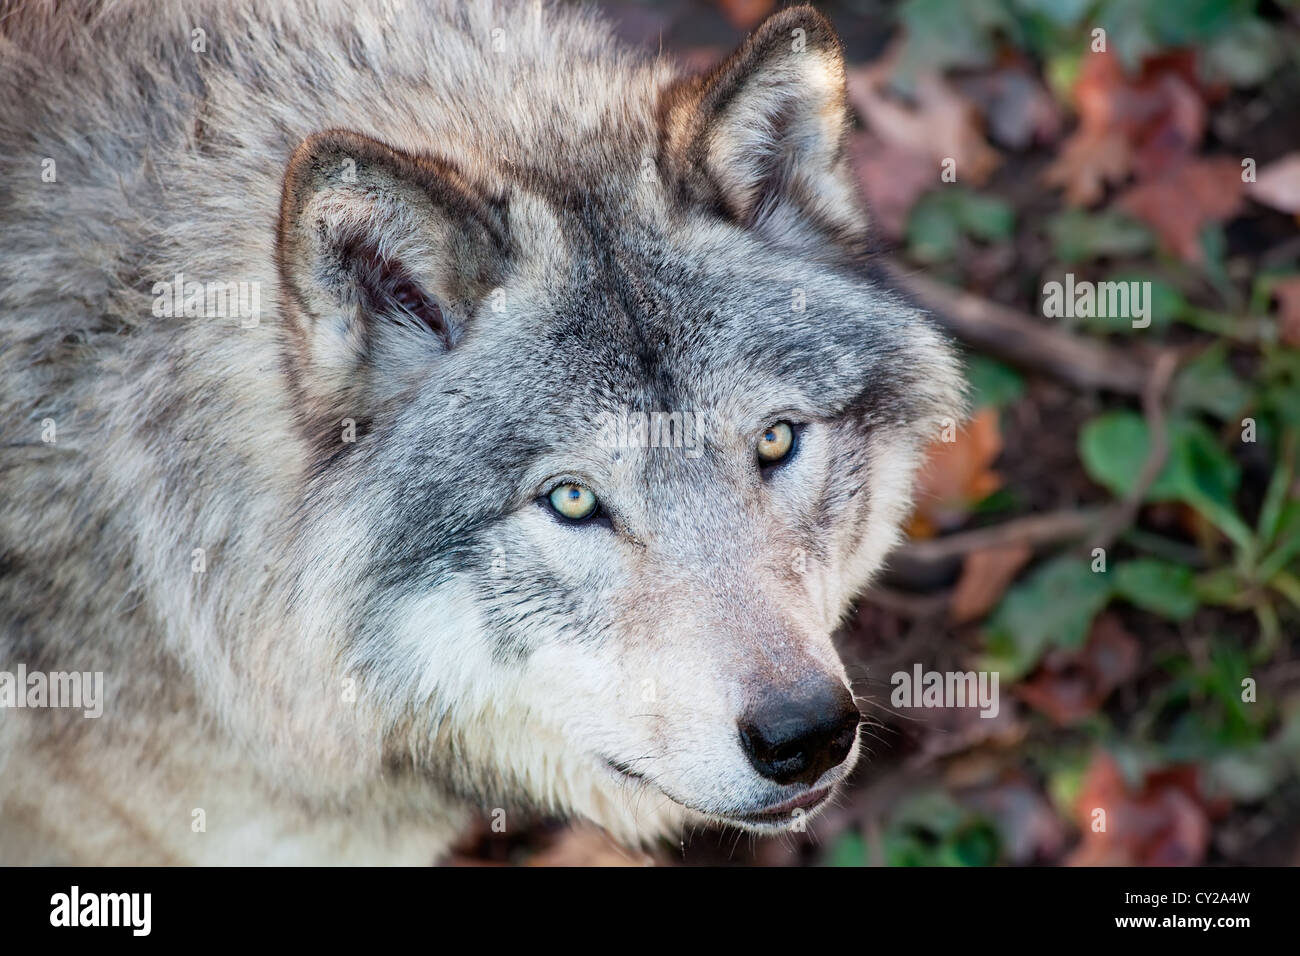 This is a close-up of a gray wolf - Stock Image